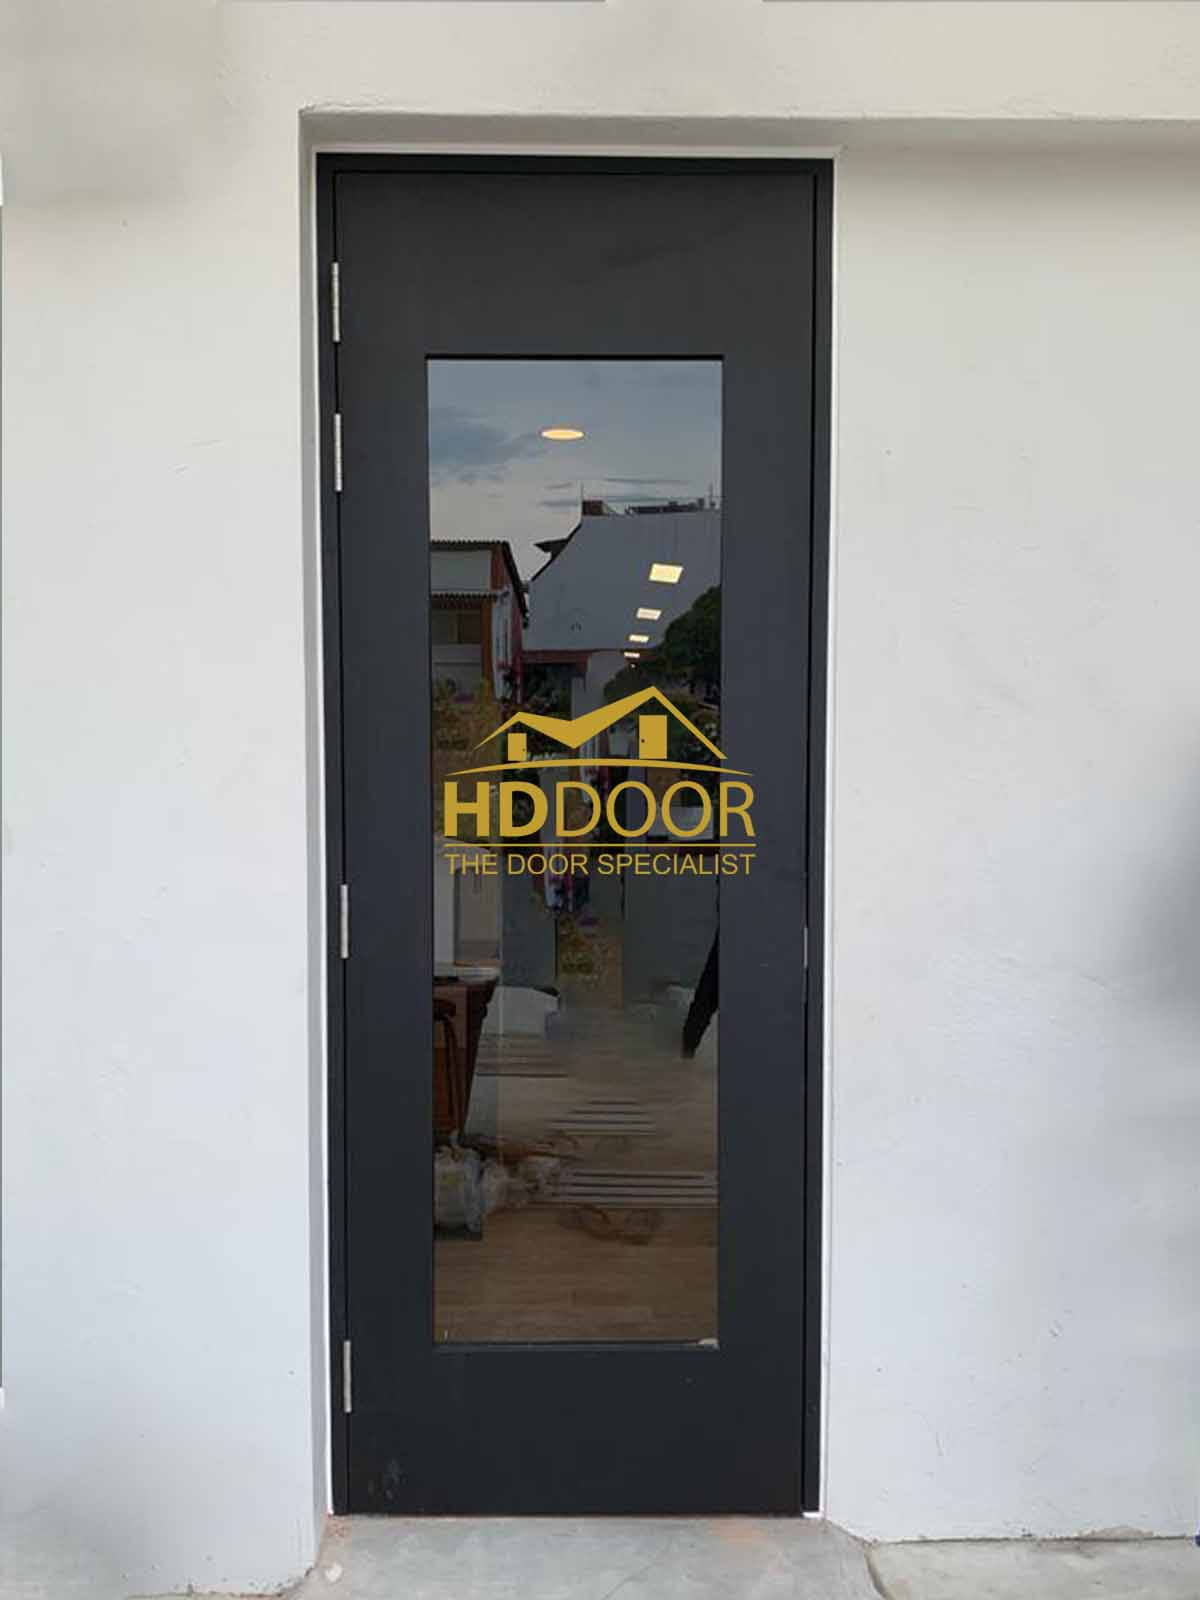 hddoor commercial project